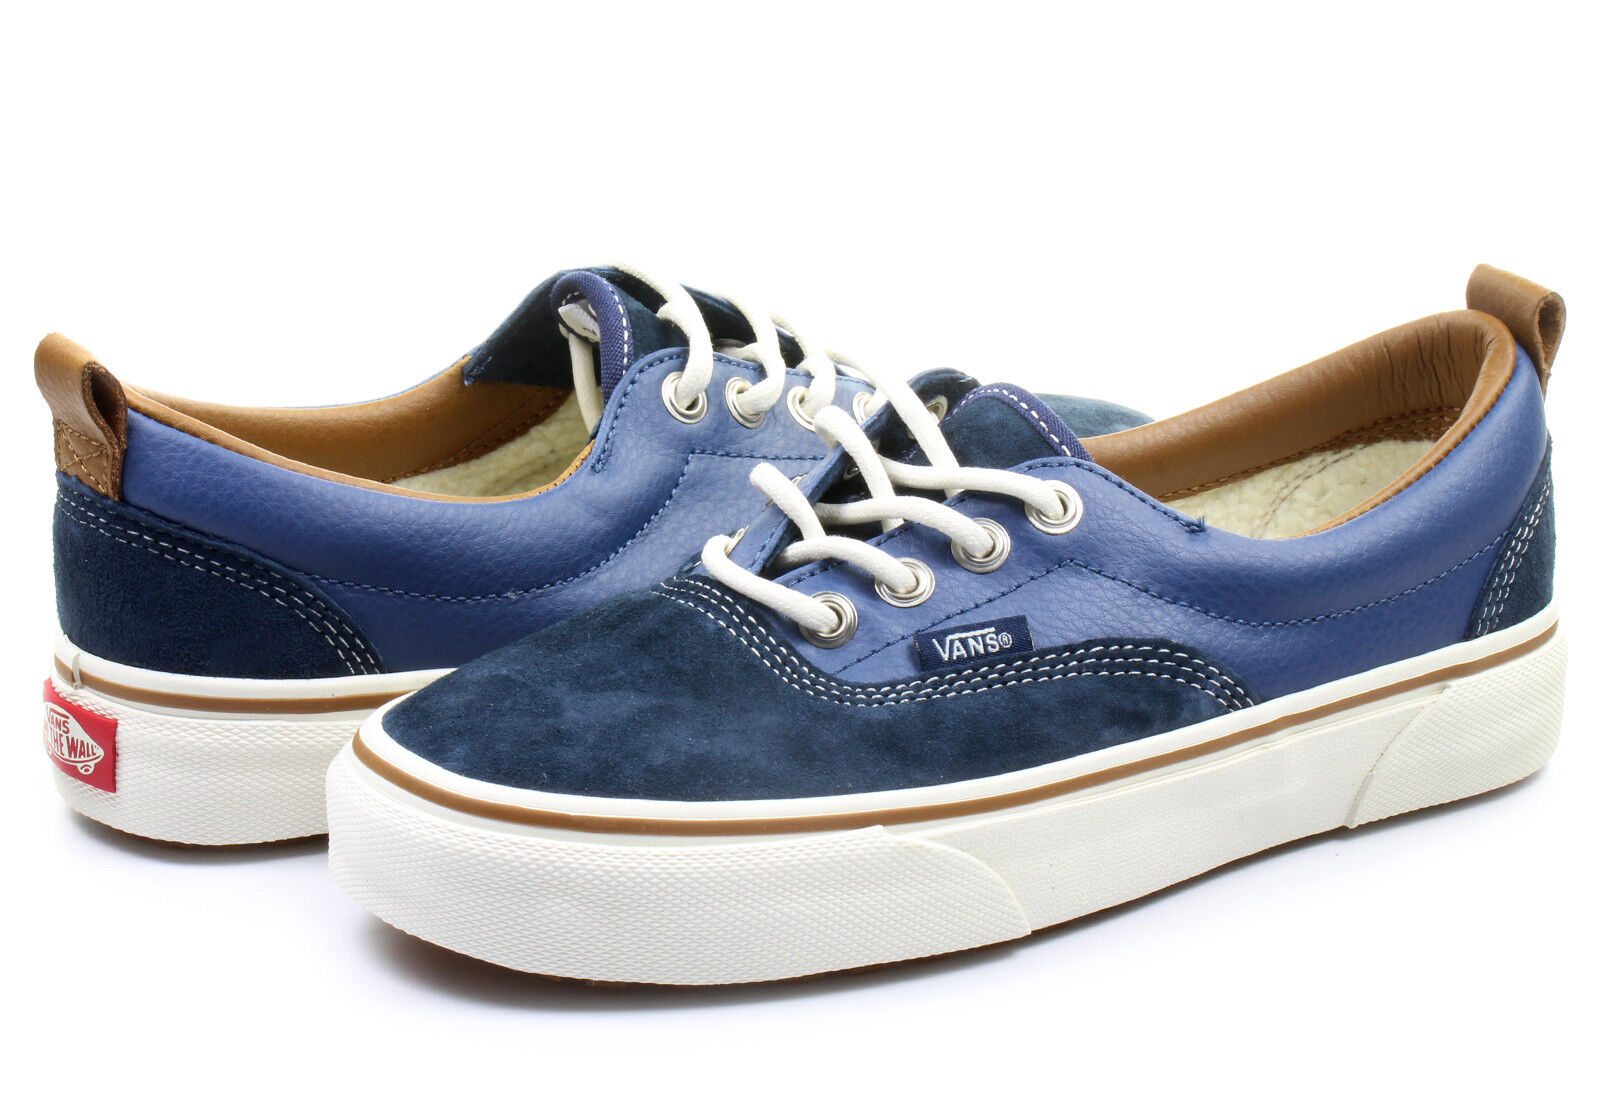 Vans Authentic Era Mte Classic Sneakers Canvas Women Men Of The Wall Dress bluees